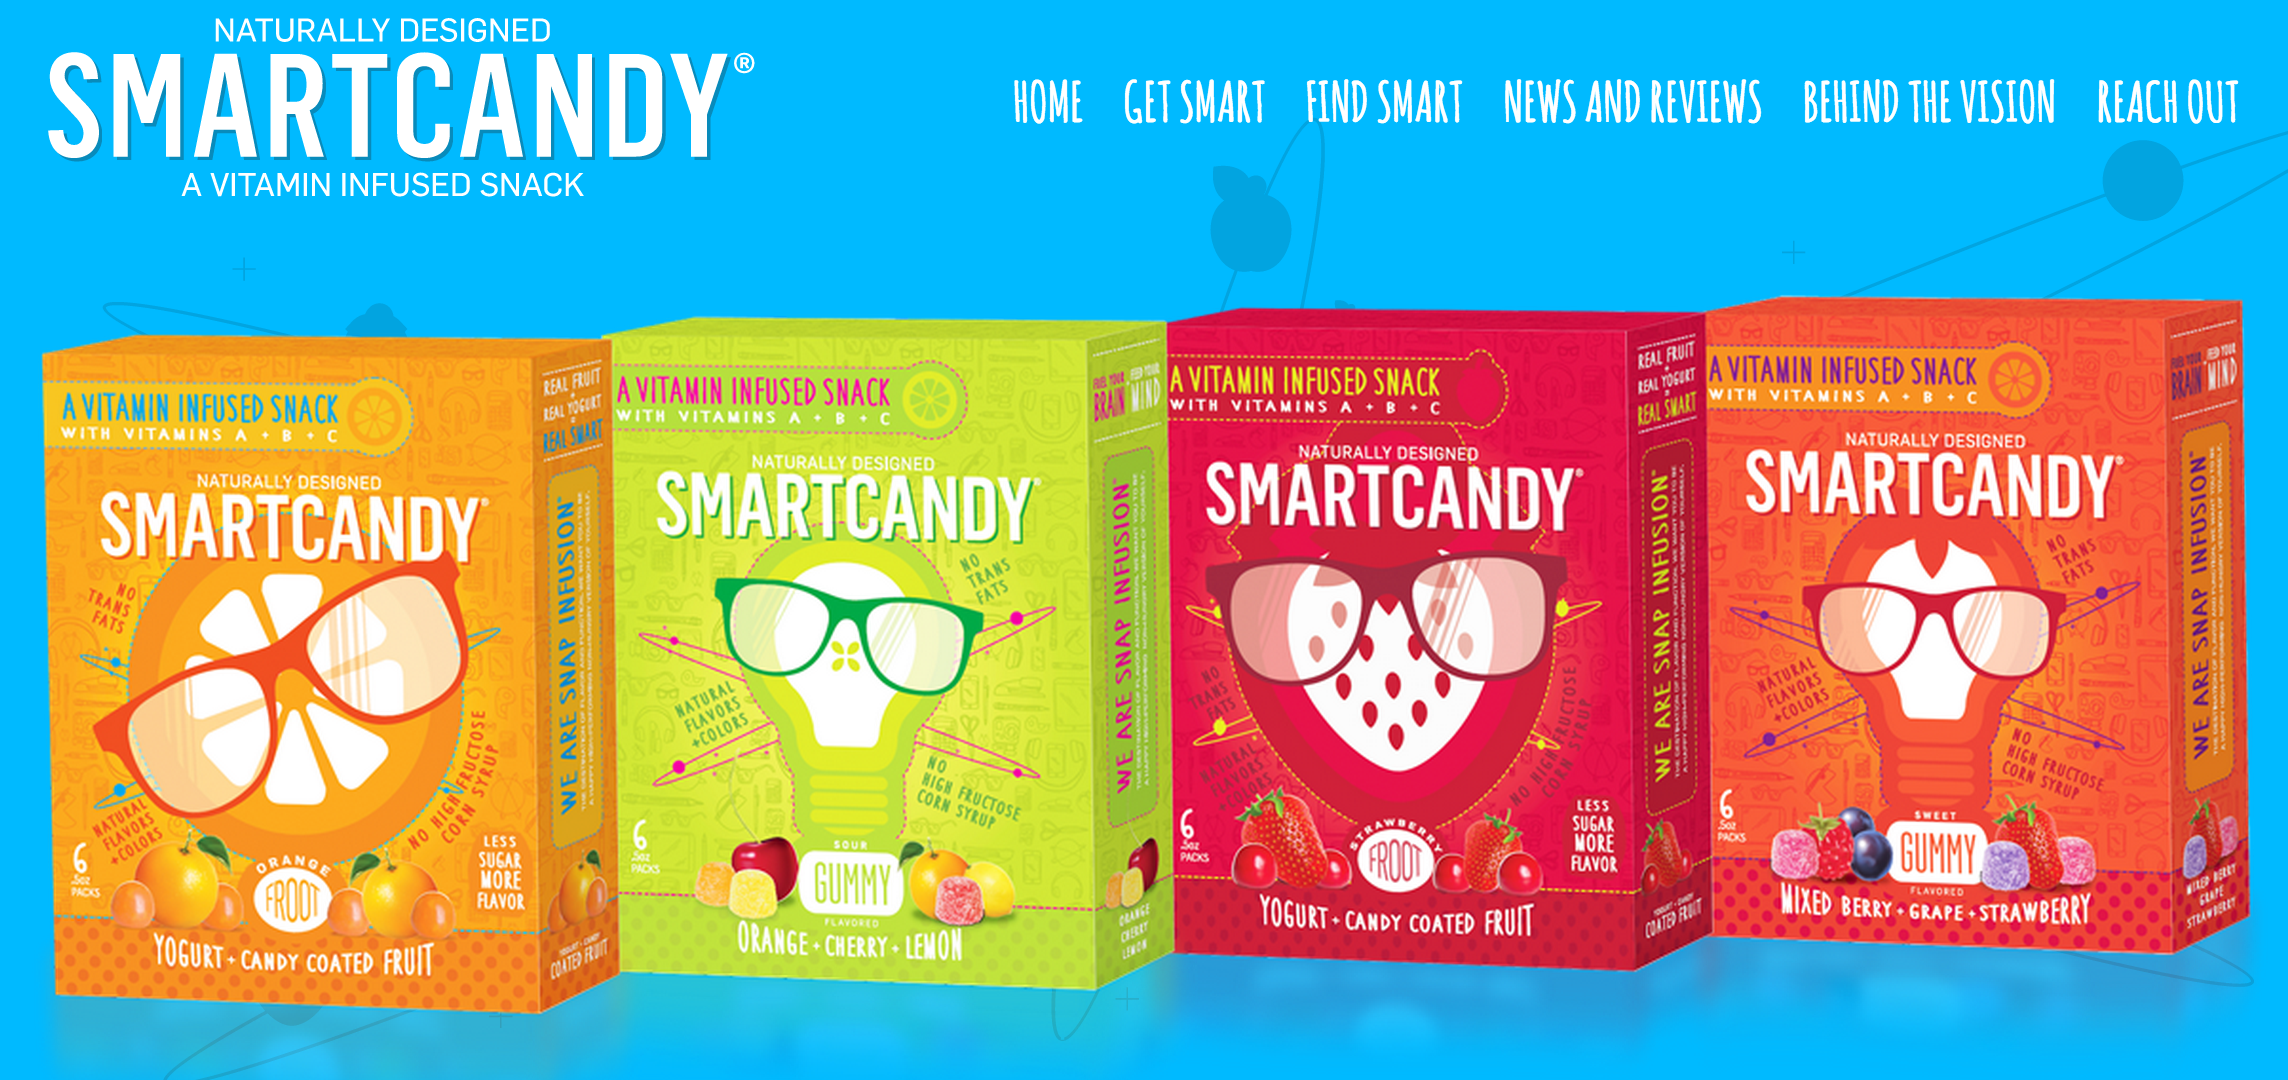 Makers Of SmartCandy Warned About Possibly Misleading Nutrition Claims